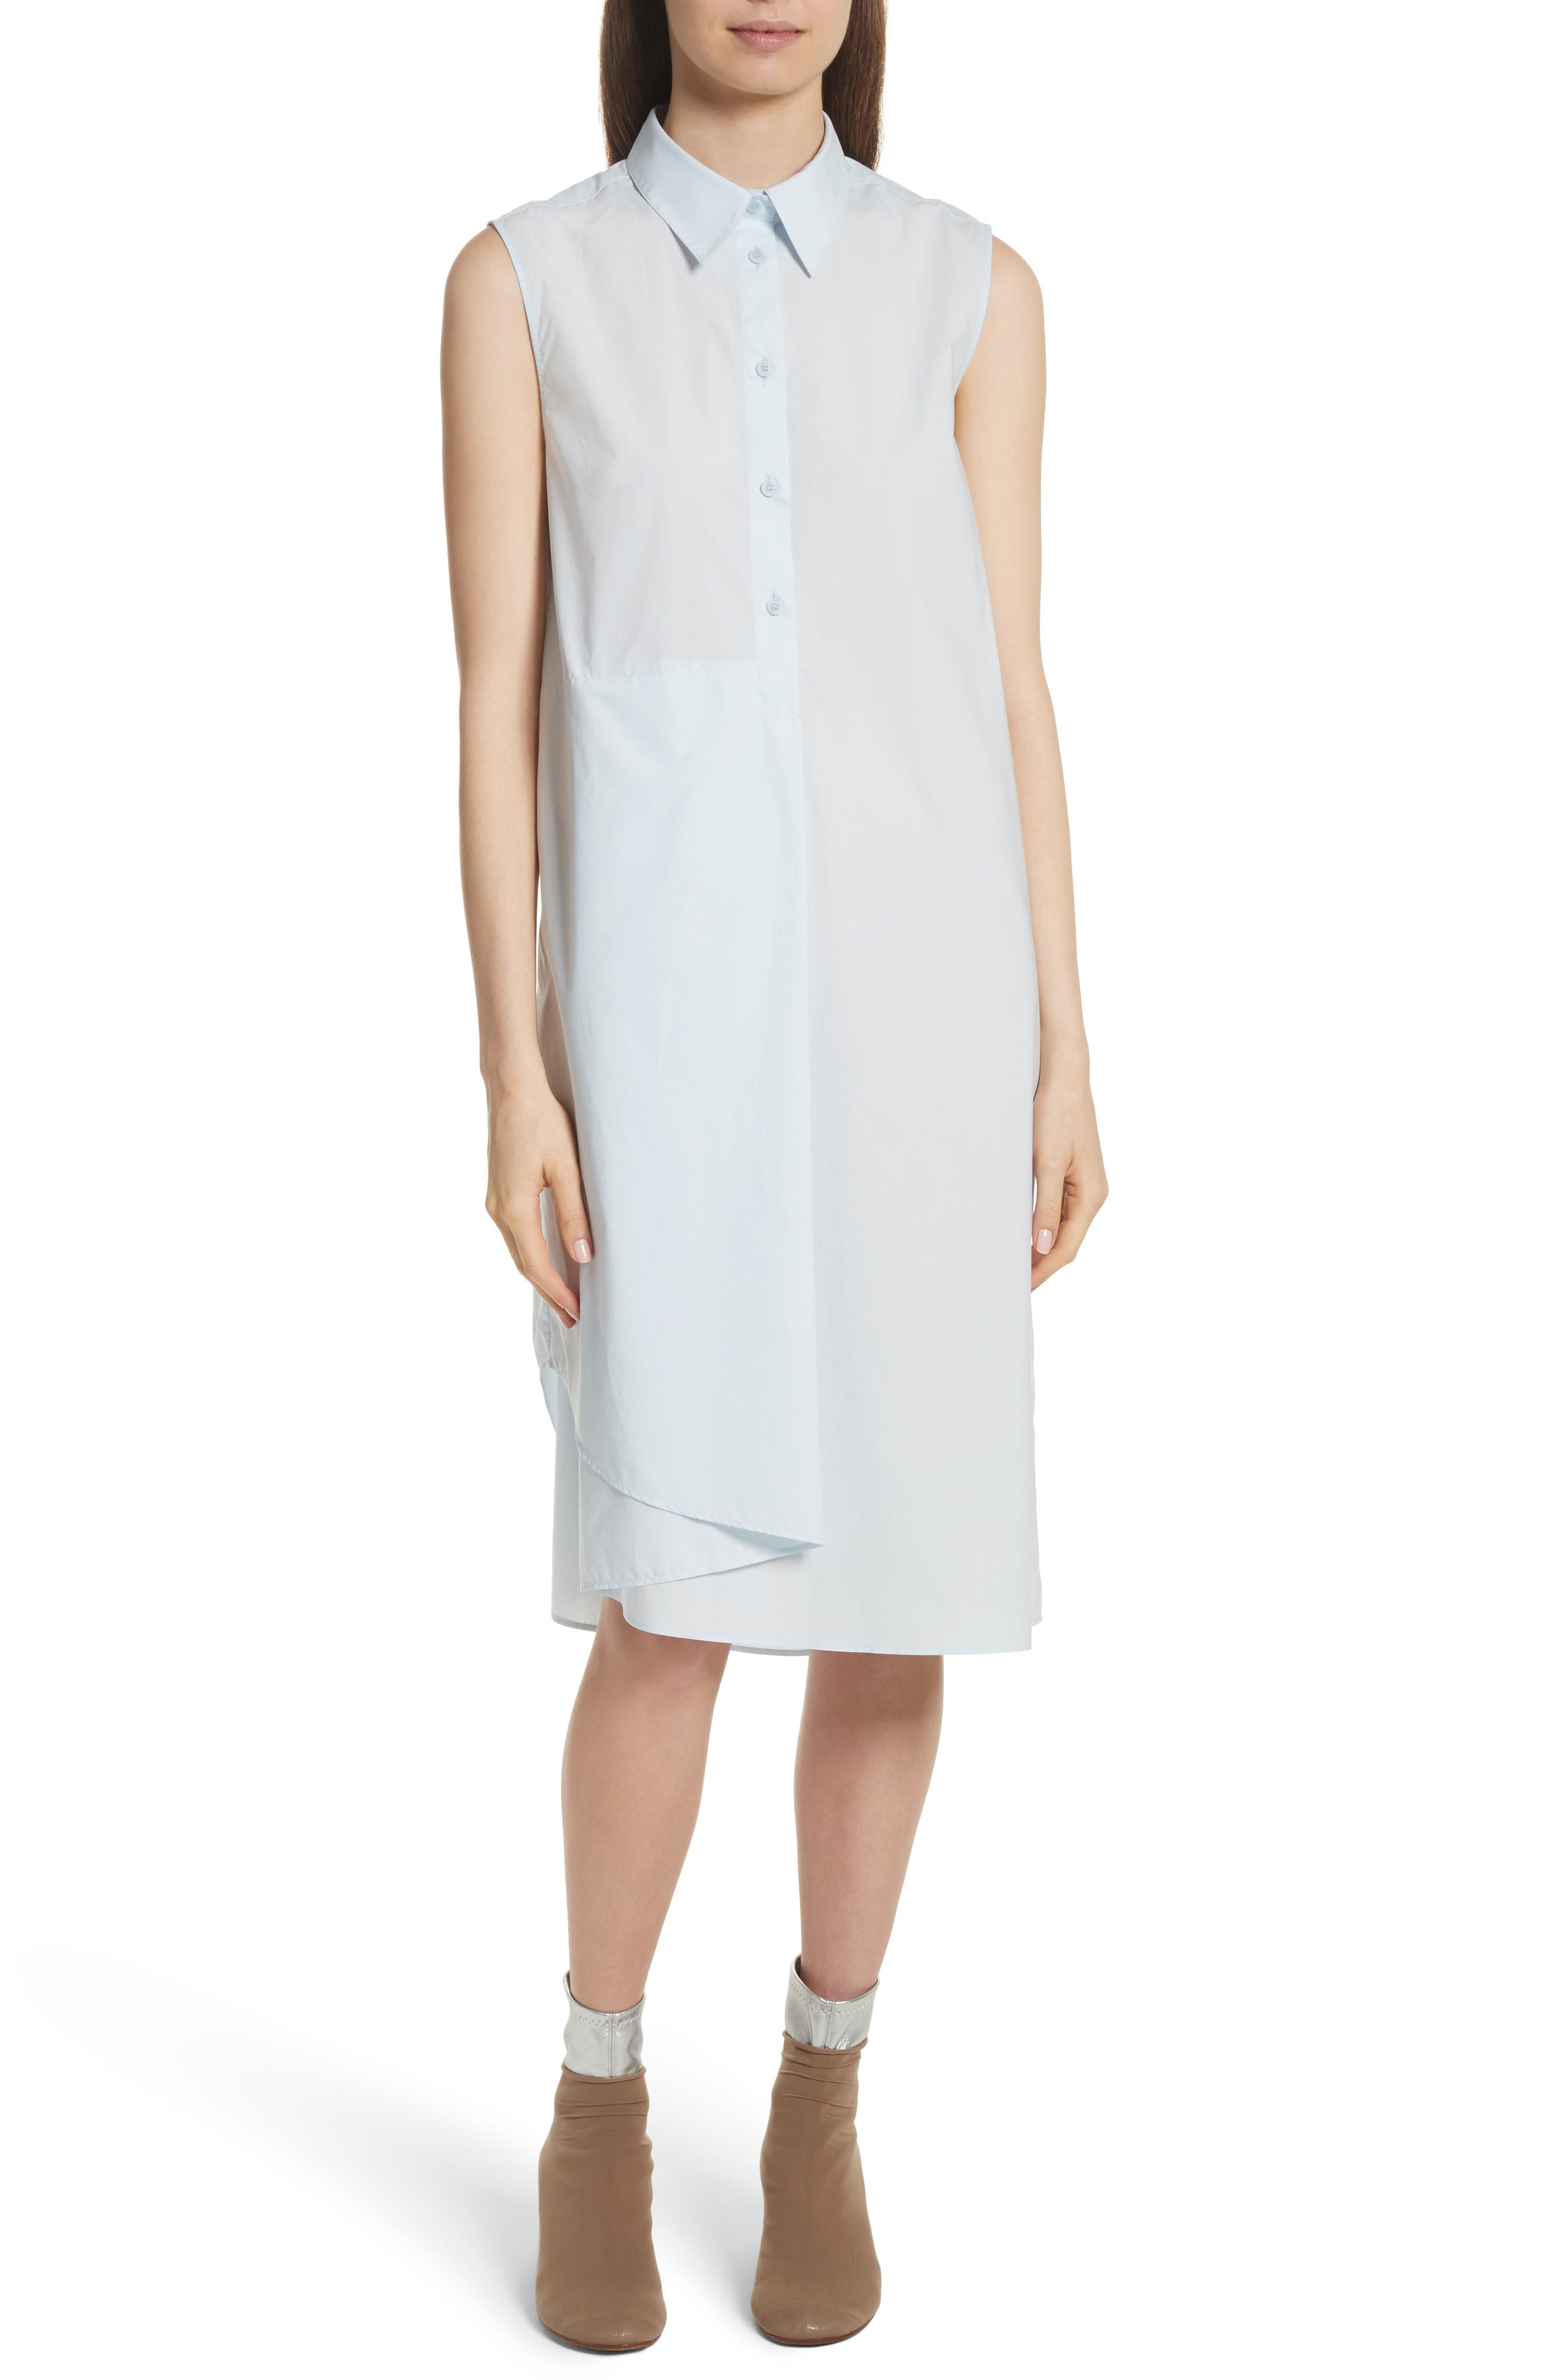 MM6 Maison Margiela Sleeveless Shirtdress